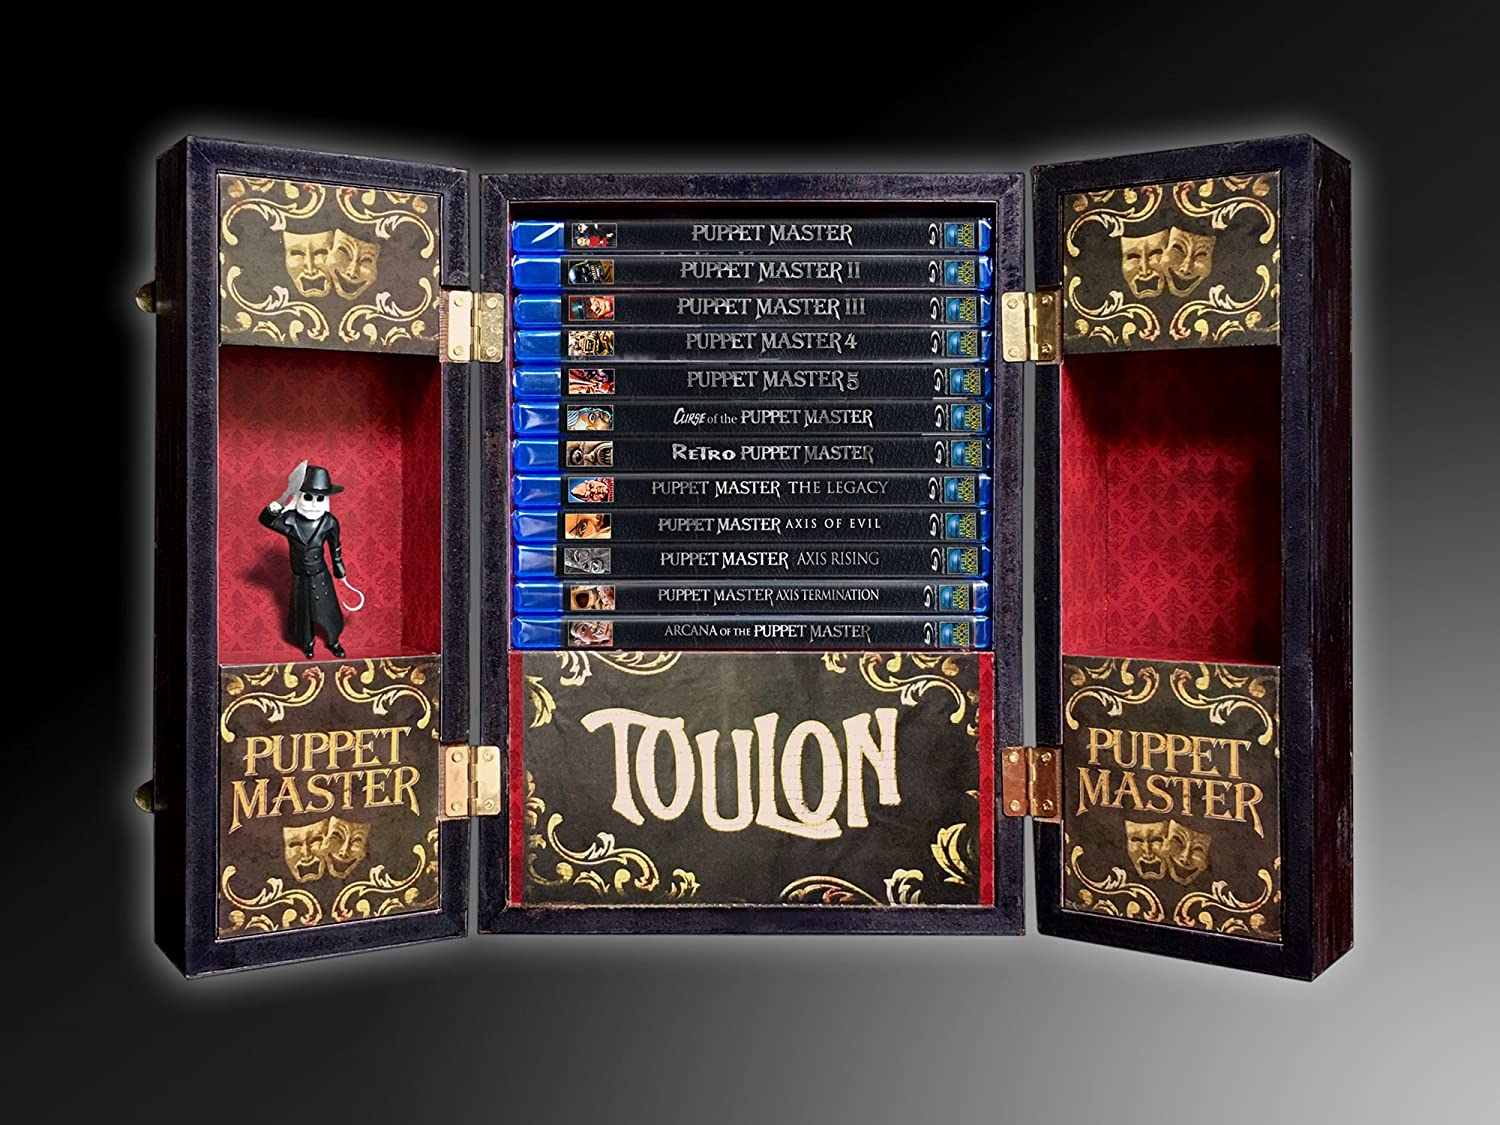 PUPPET MASTER COLLECTION Toulon's Ultimate Collectible Trunk Set